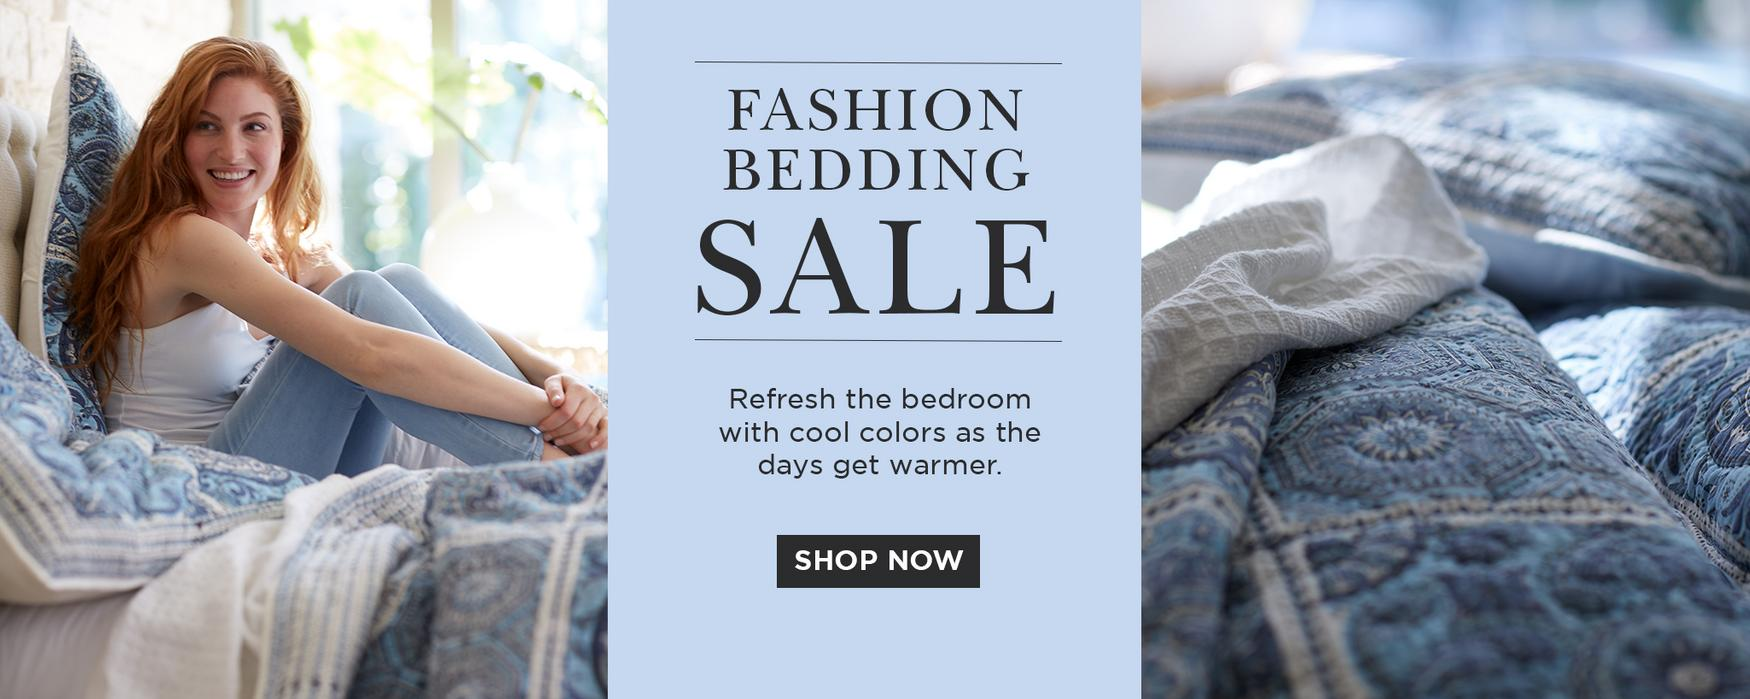 Shop Fashion Bedding Sale